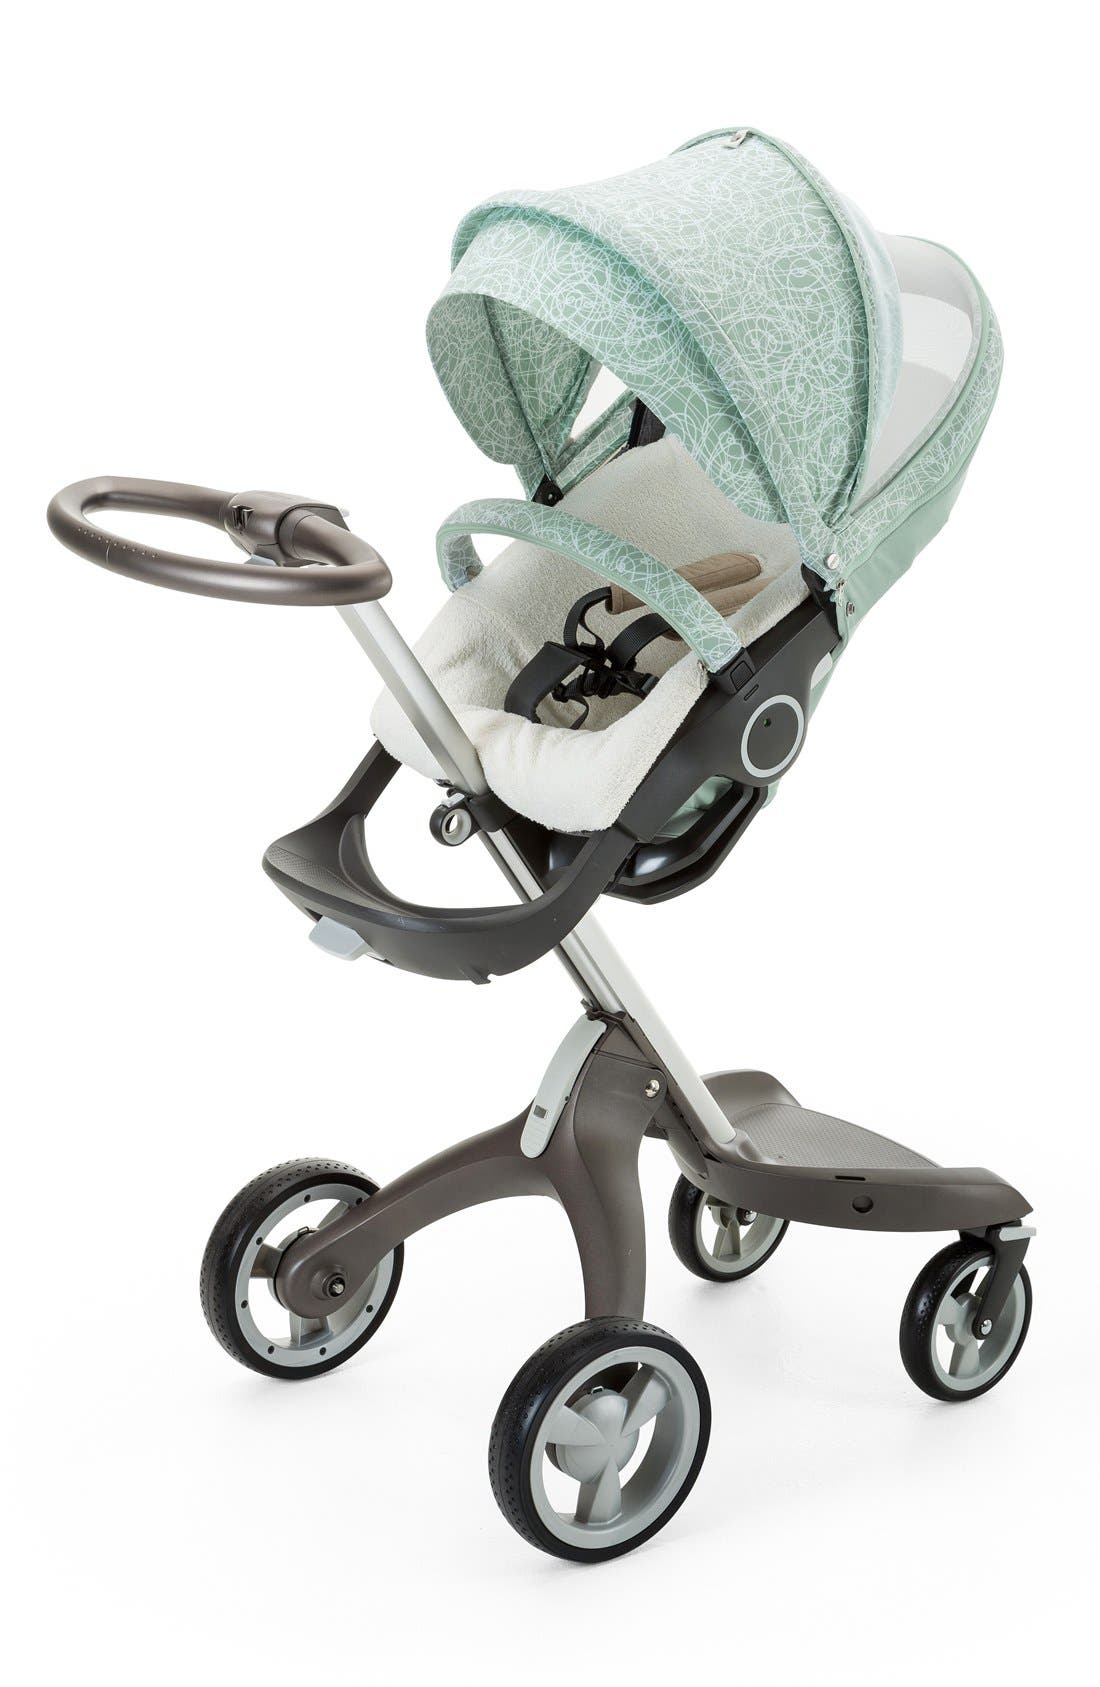 Baby 'Xplory<sup>®</sup> Stroller Summer Kit' Shade Set,                         Main,                         color, SALTY BLUE